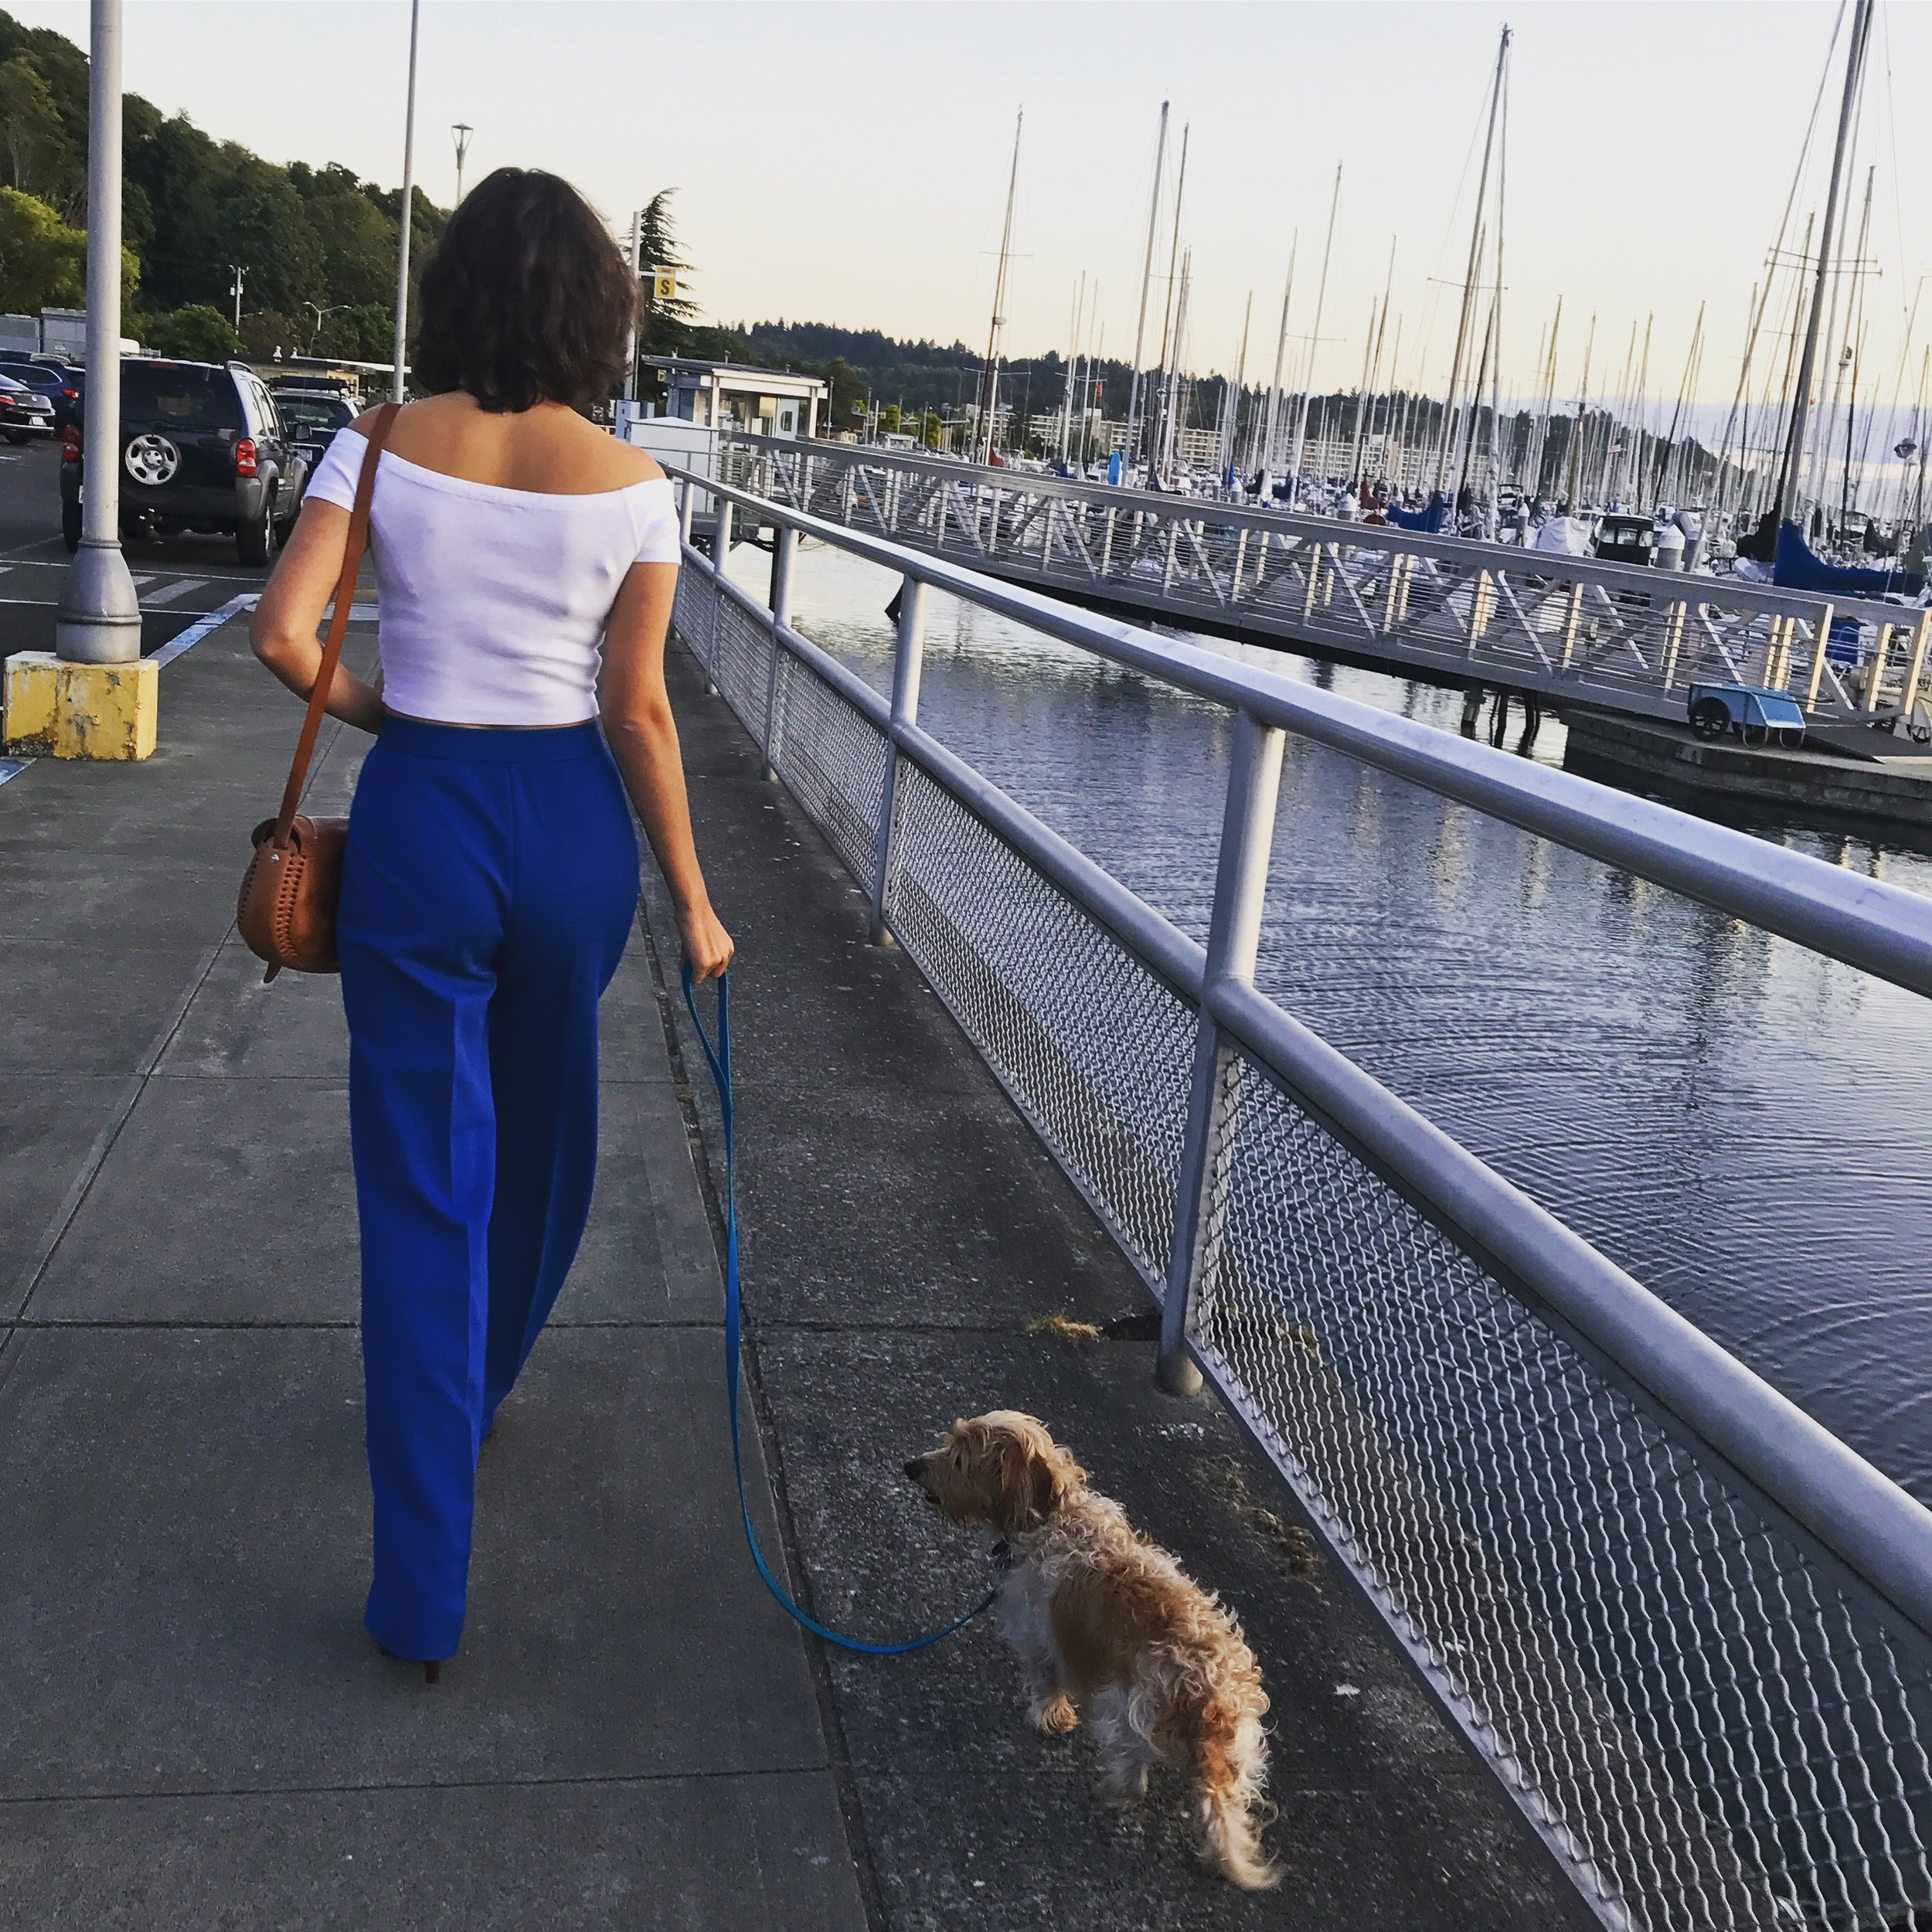 Walking my dog, Archie, by the waters of Seattle.